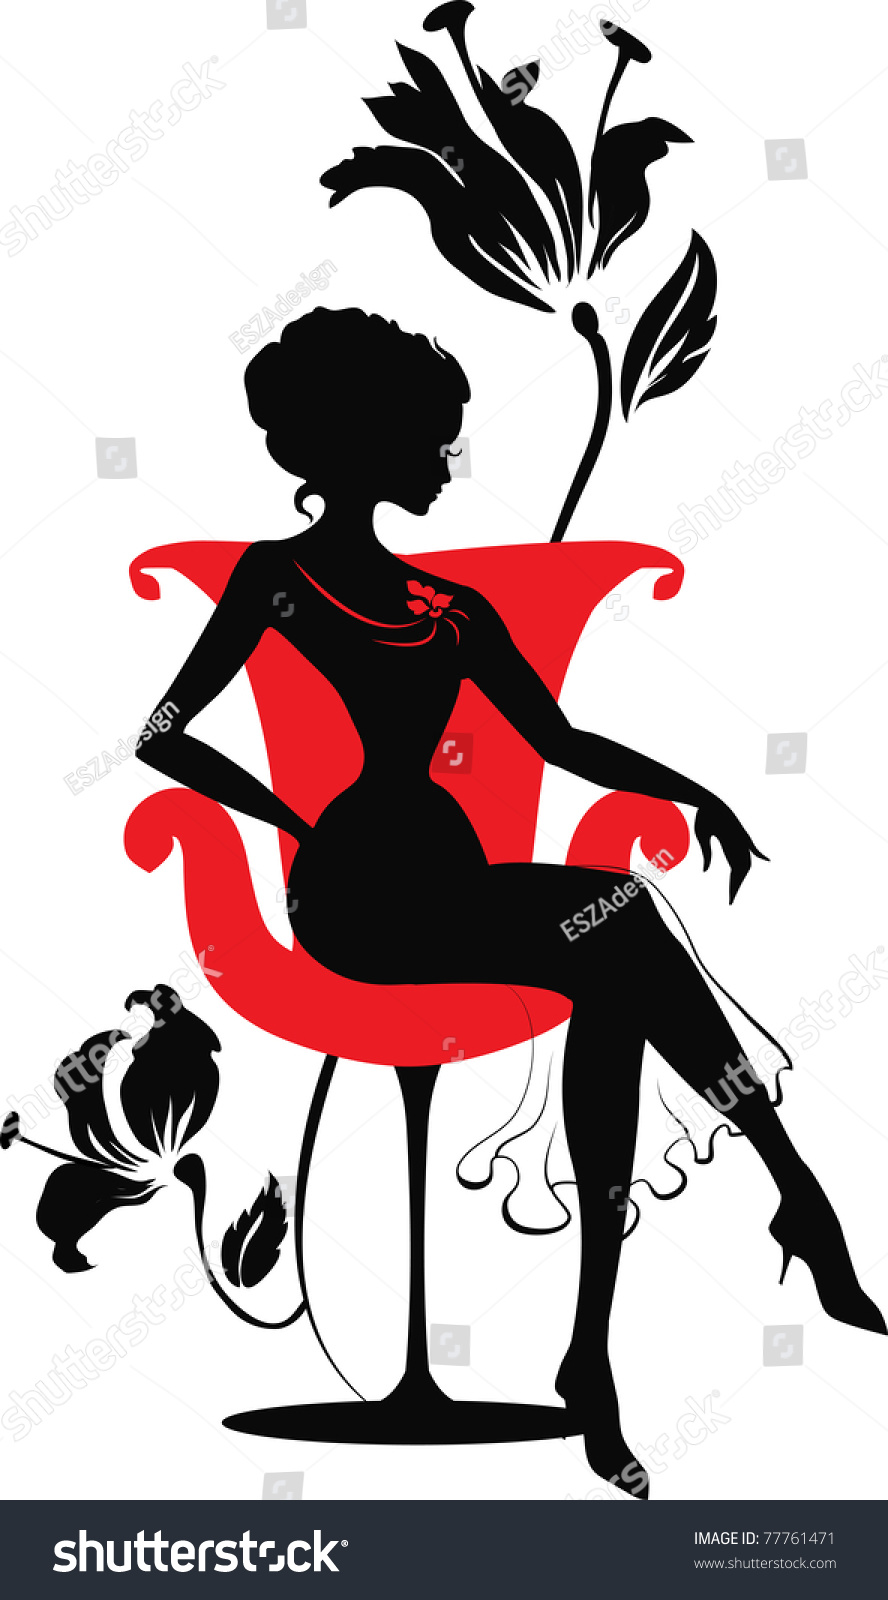 Lady Sitting Silhouette Images Stock Photos amp Vectors